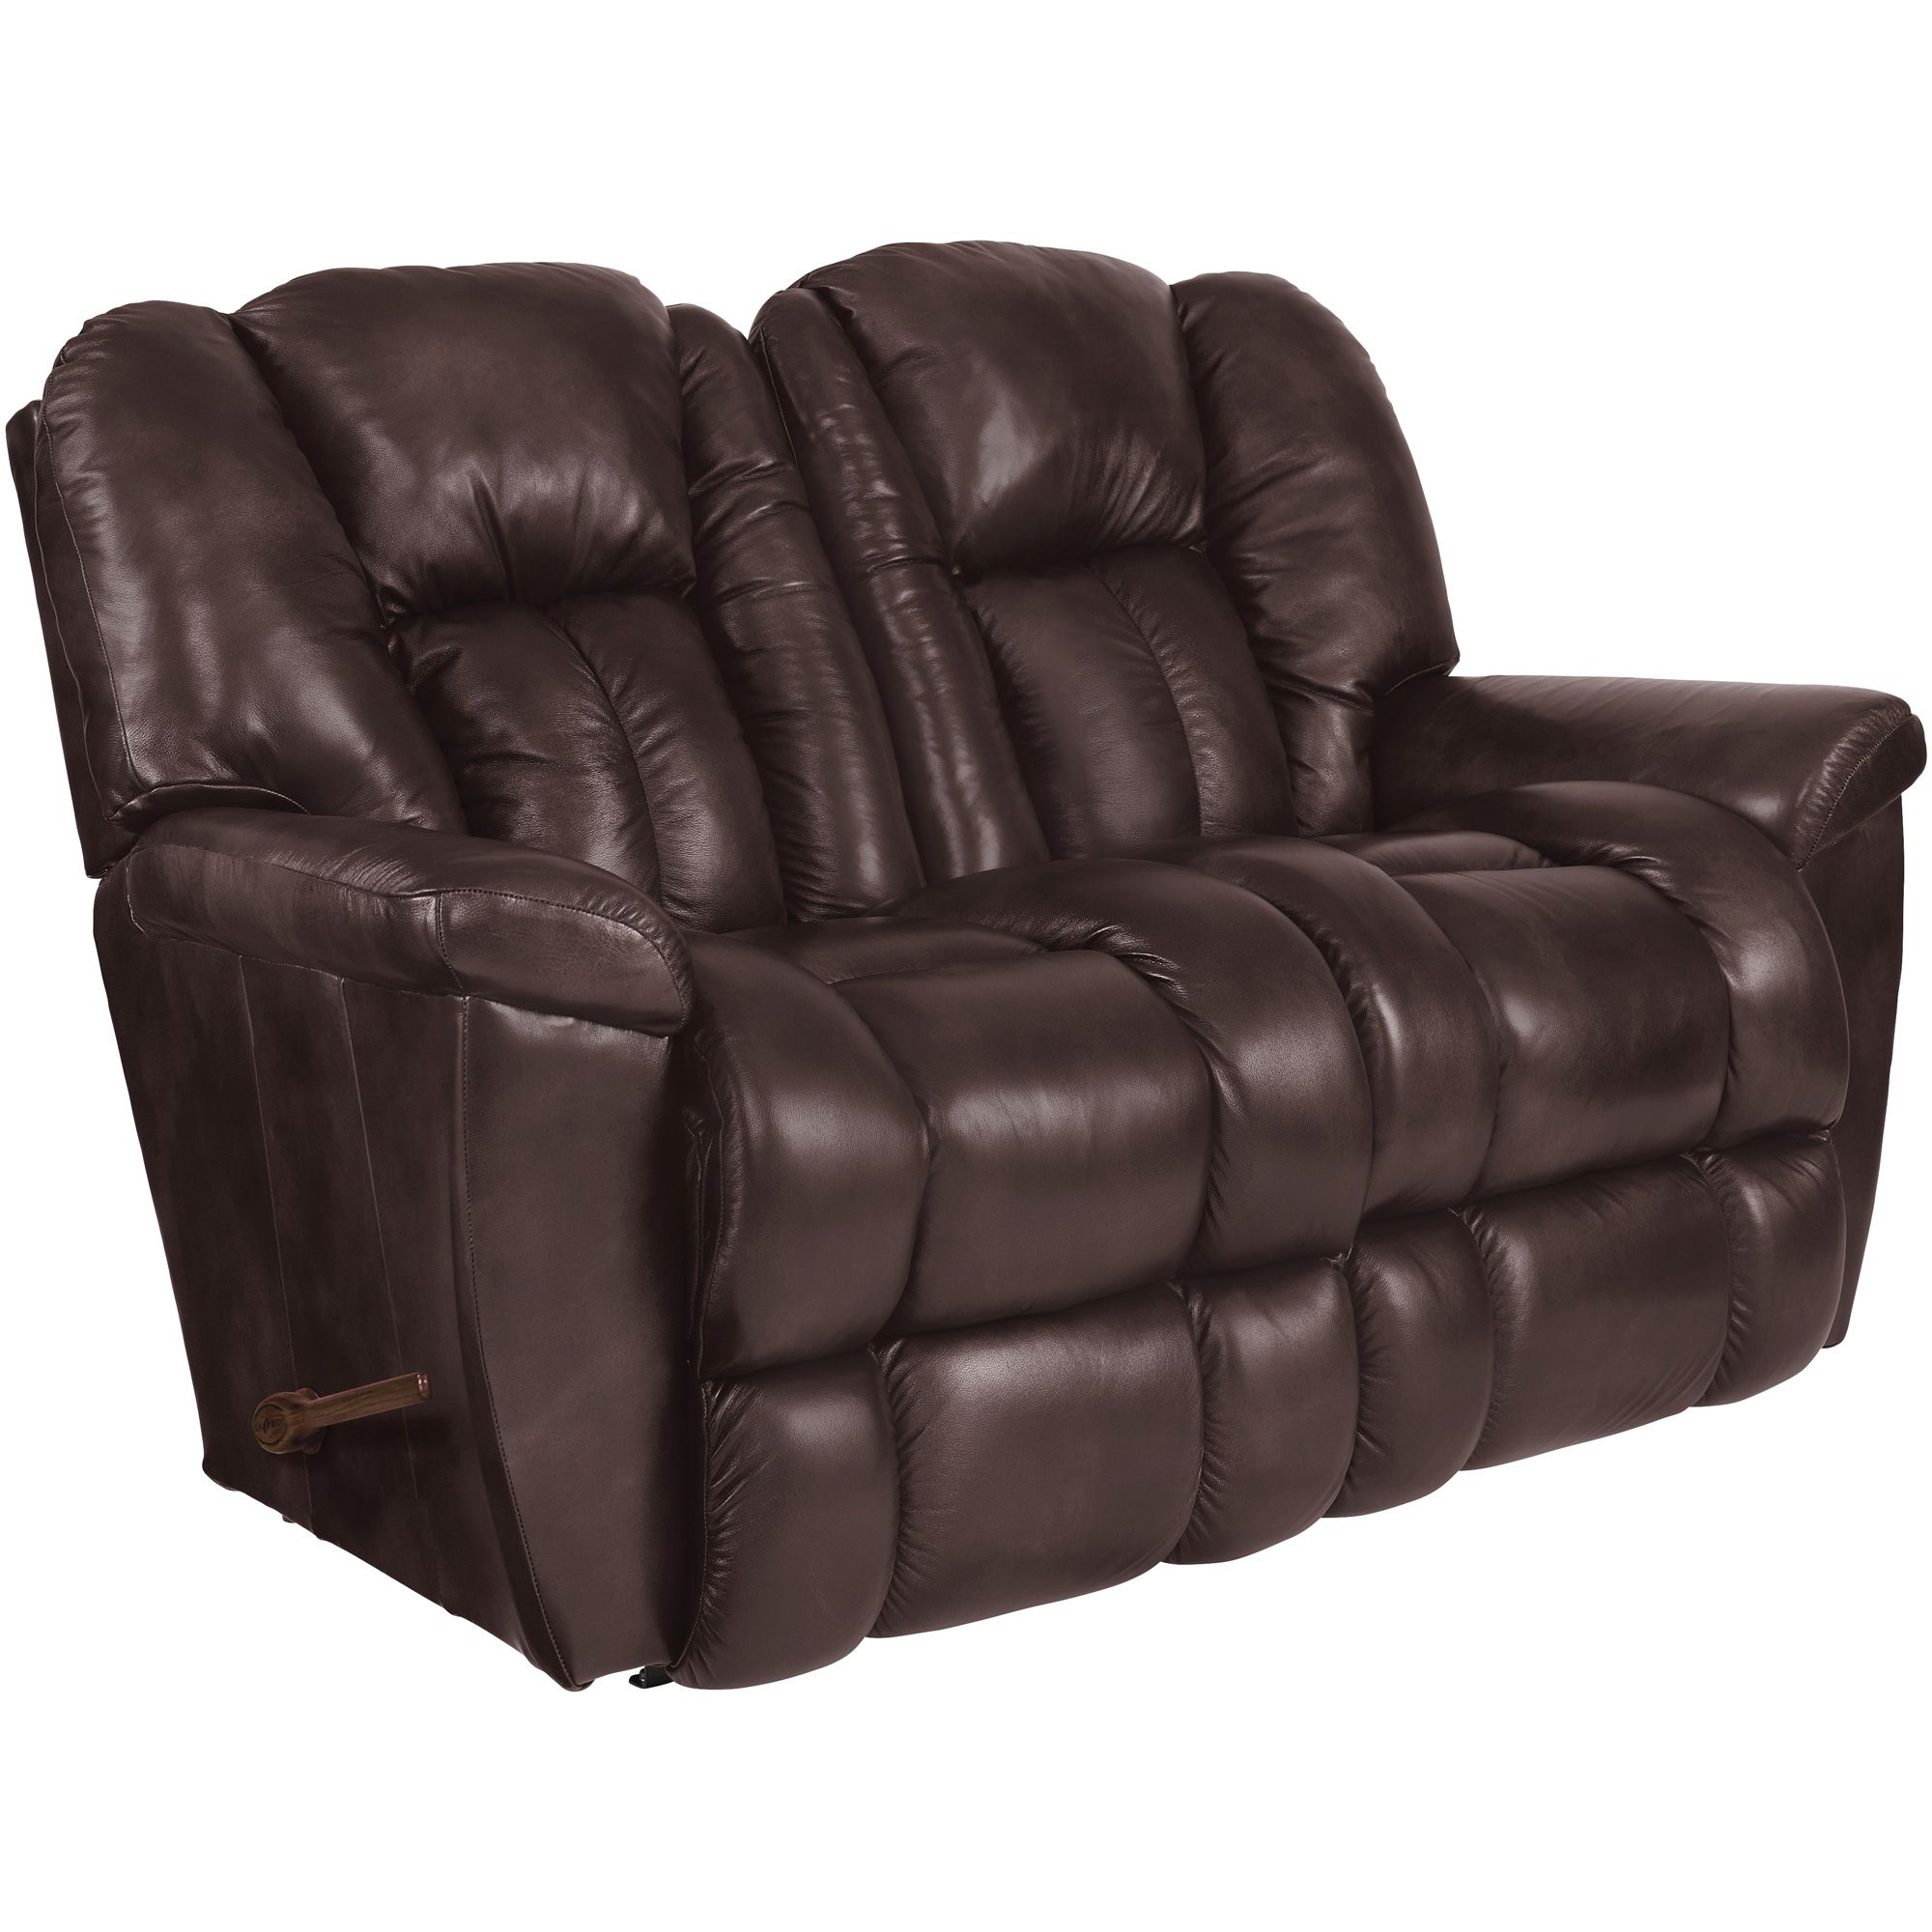 Maverick Burgundy Reclining Loveseat Recliner Luxury Sofa Sofa